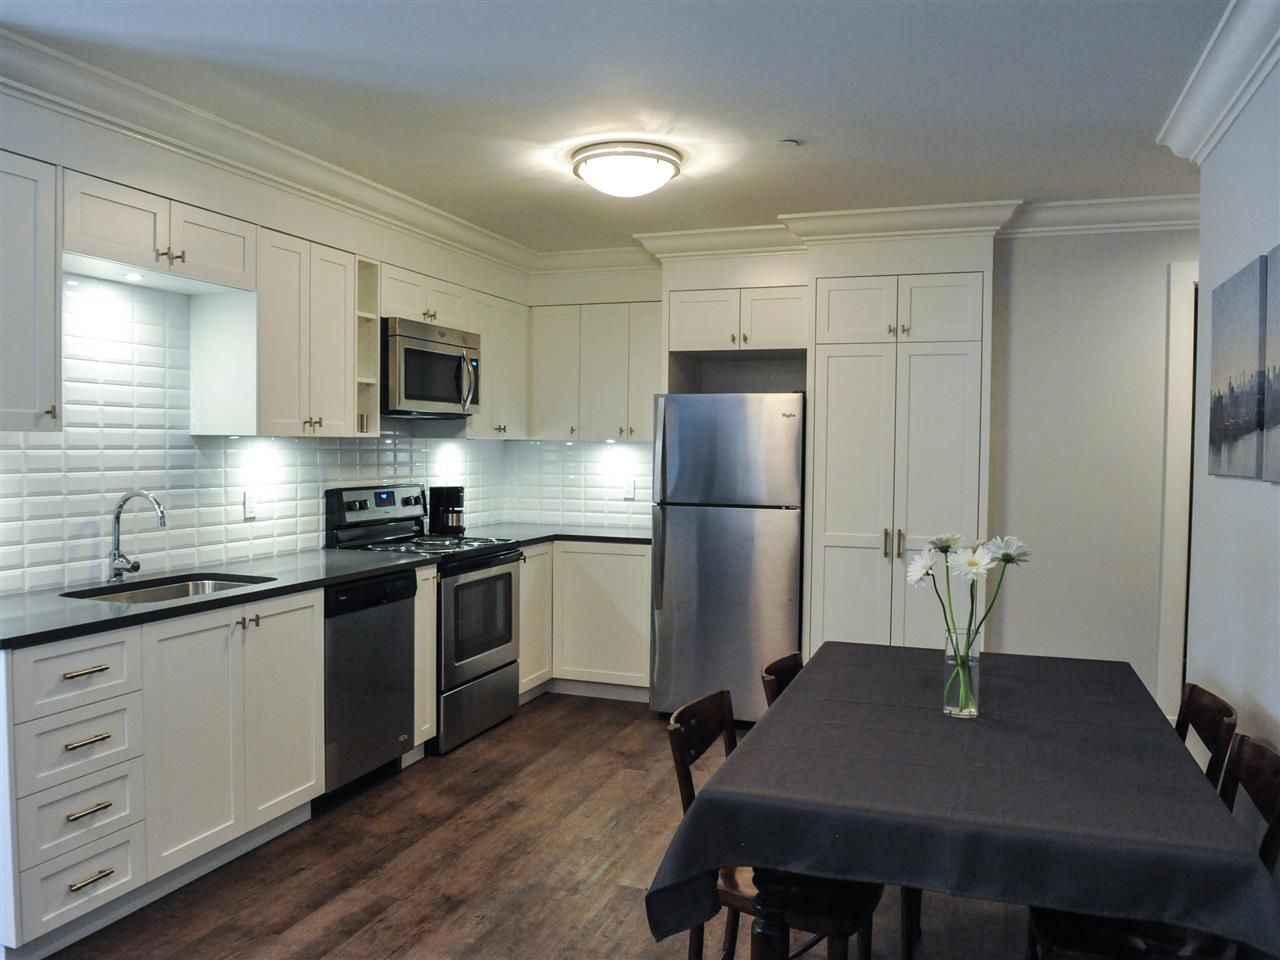 Photo 34: Photos: 7457 LABURNUM Street in Vancouver: S.W. Marine House for sale (Vancouver West)  : MLS®# R2507518